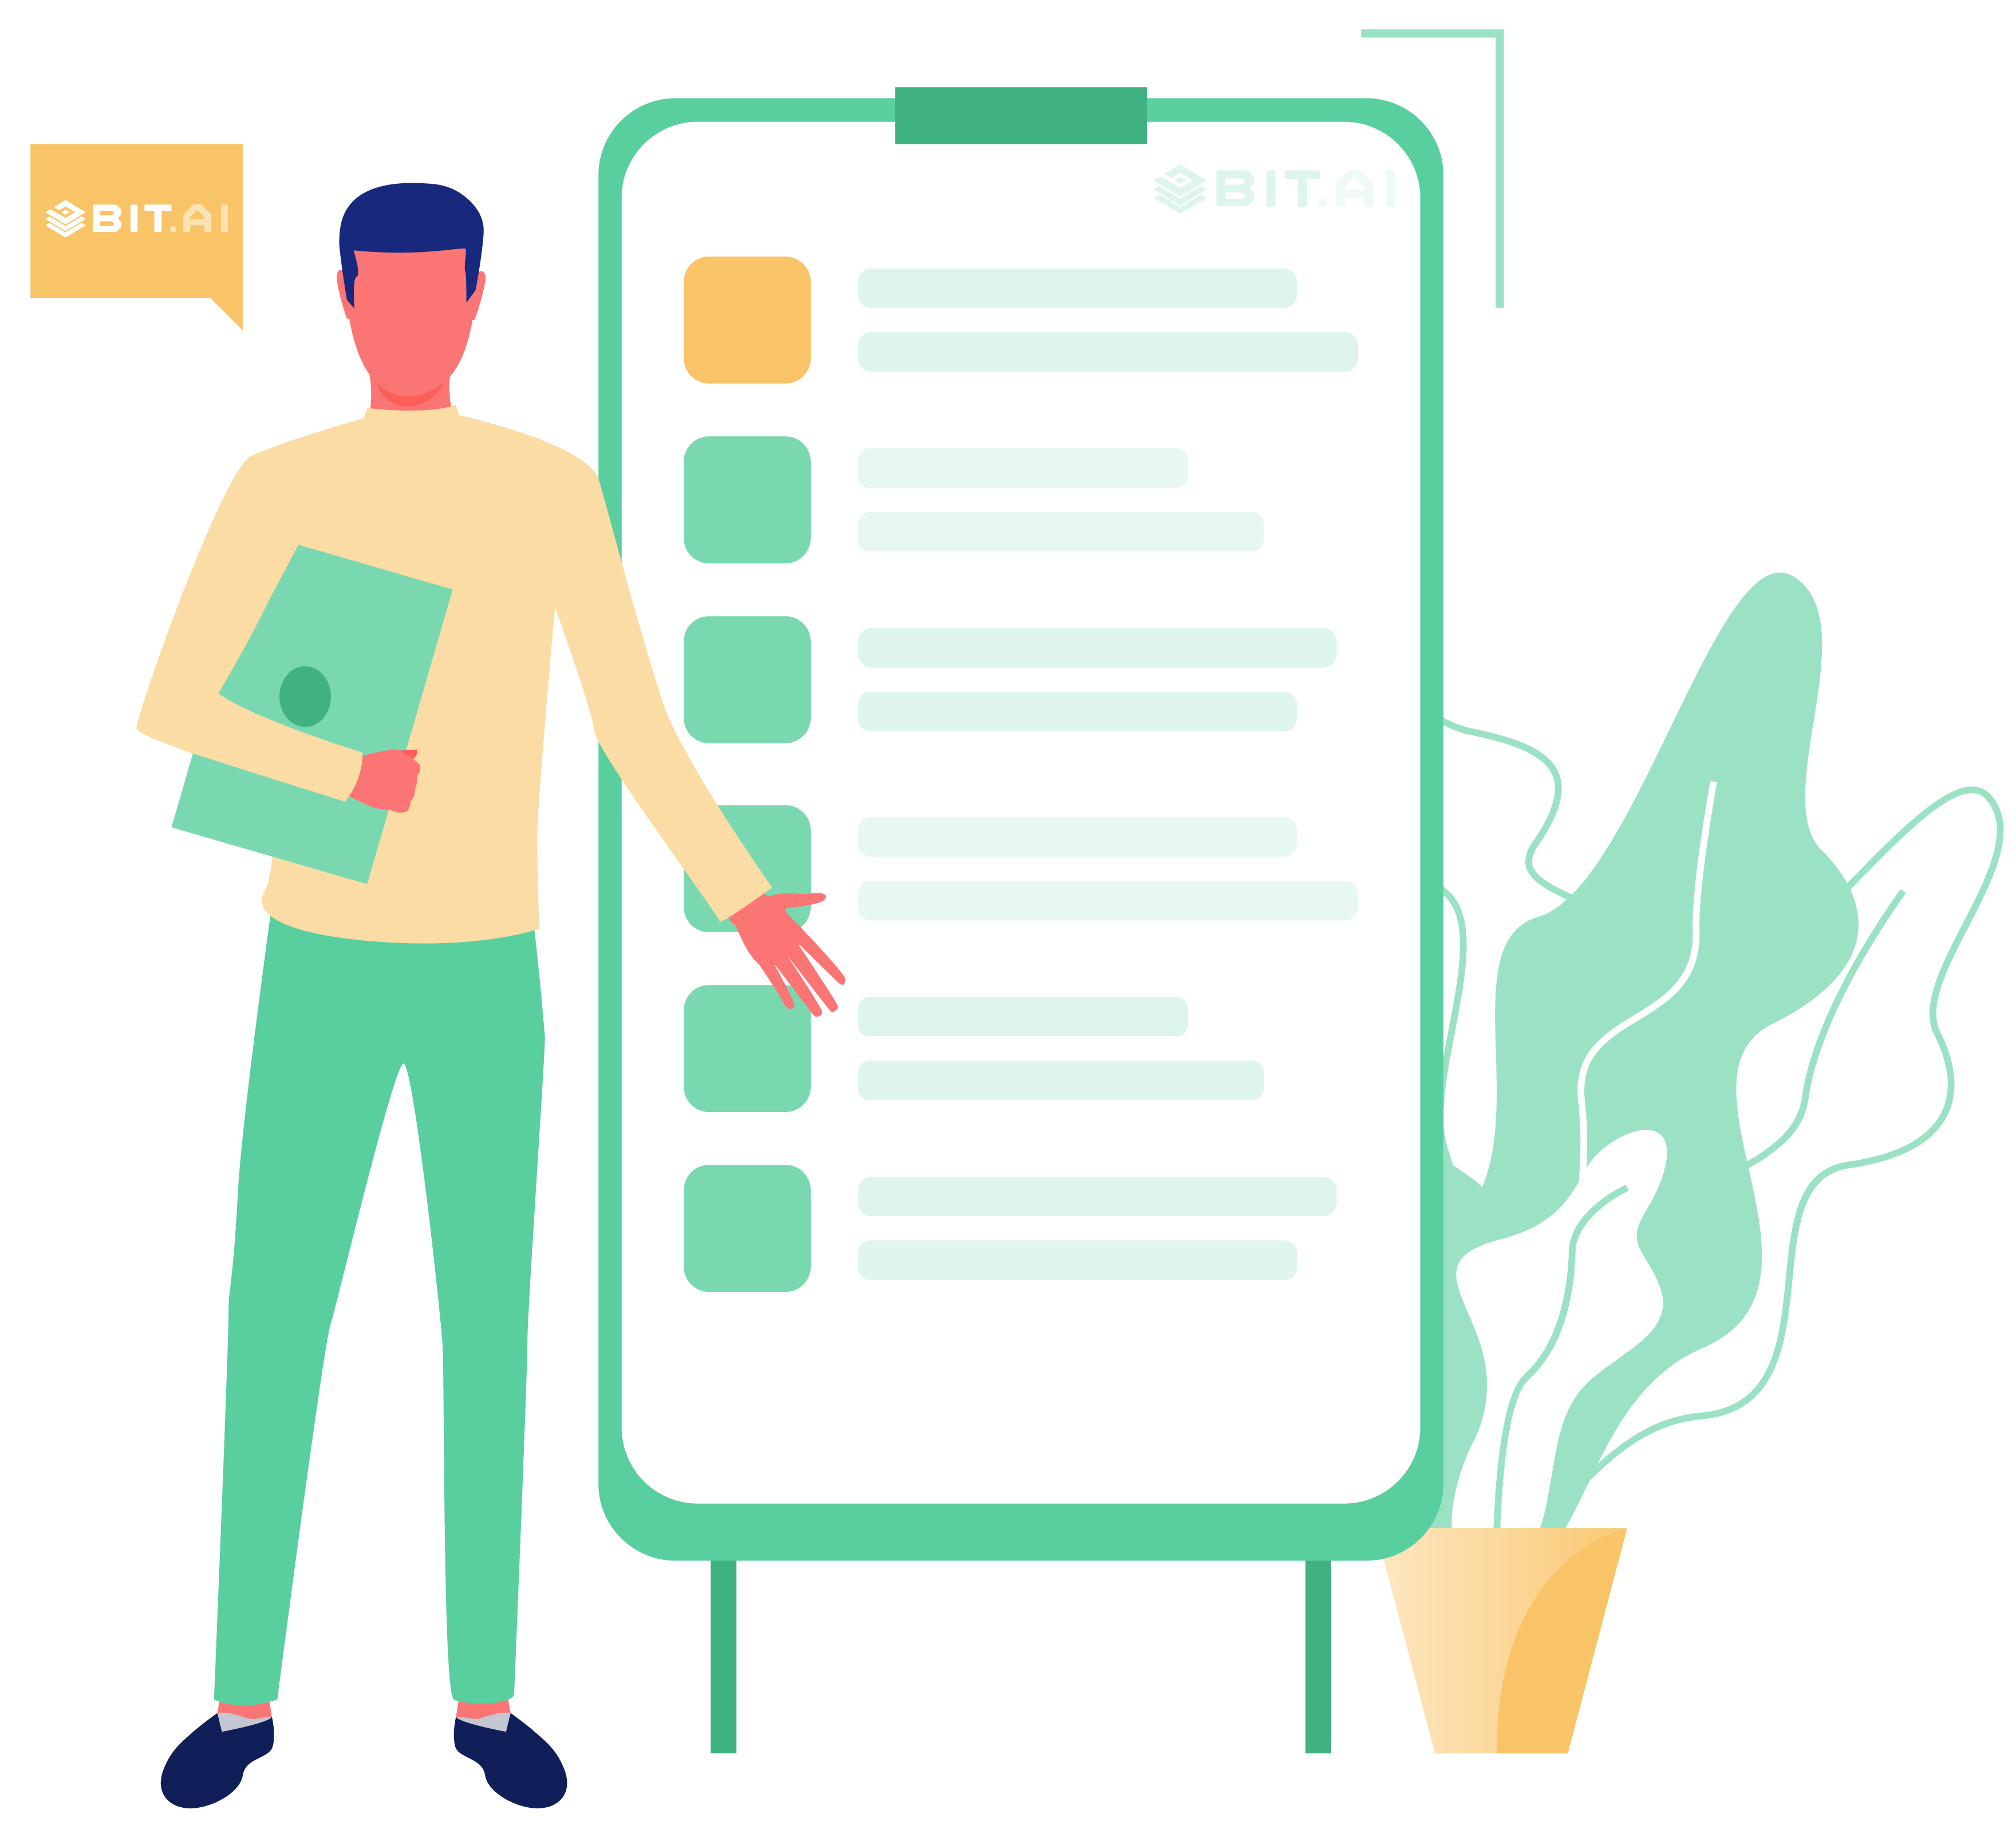 Animated illustration of a training manual guide